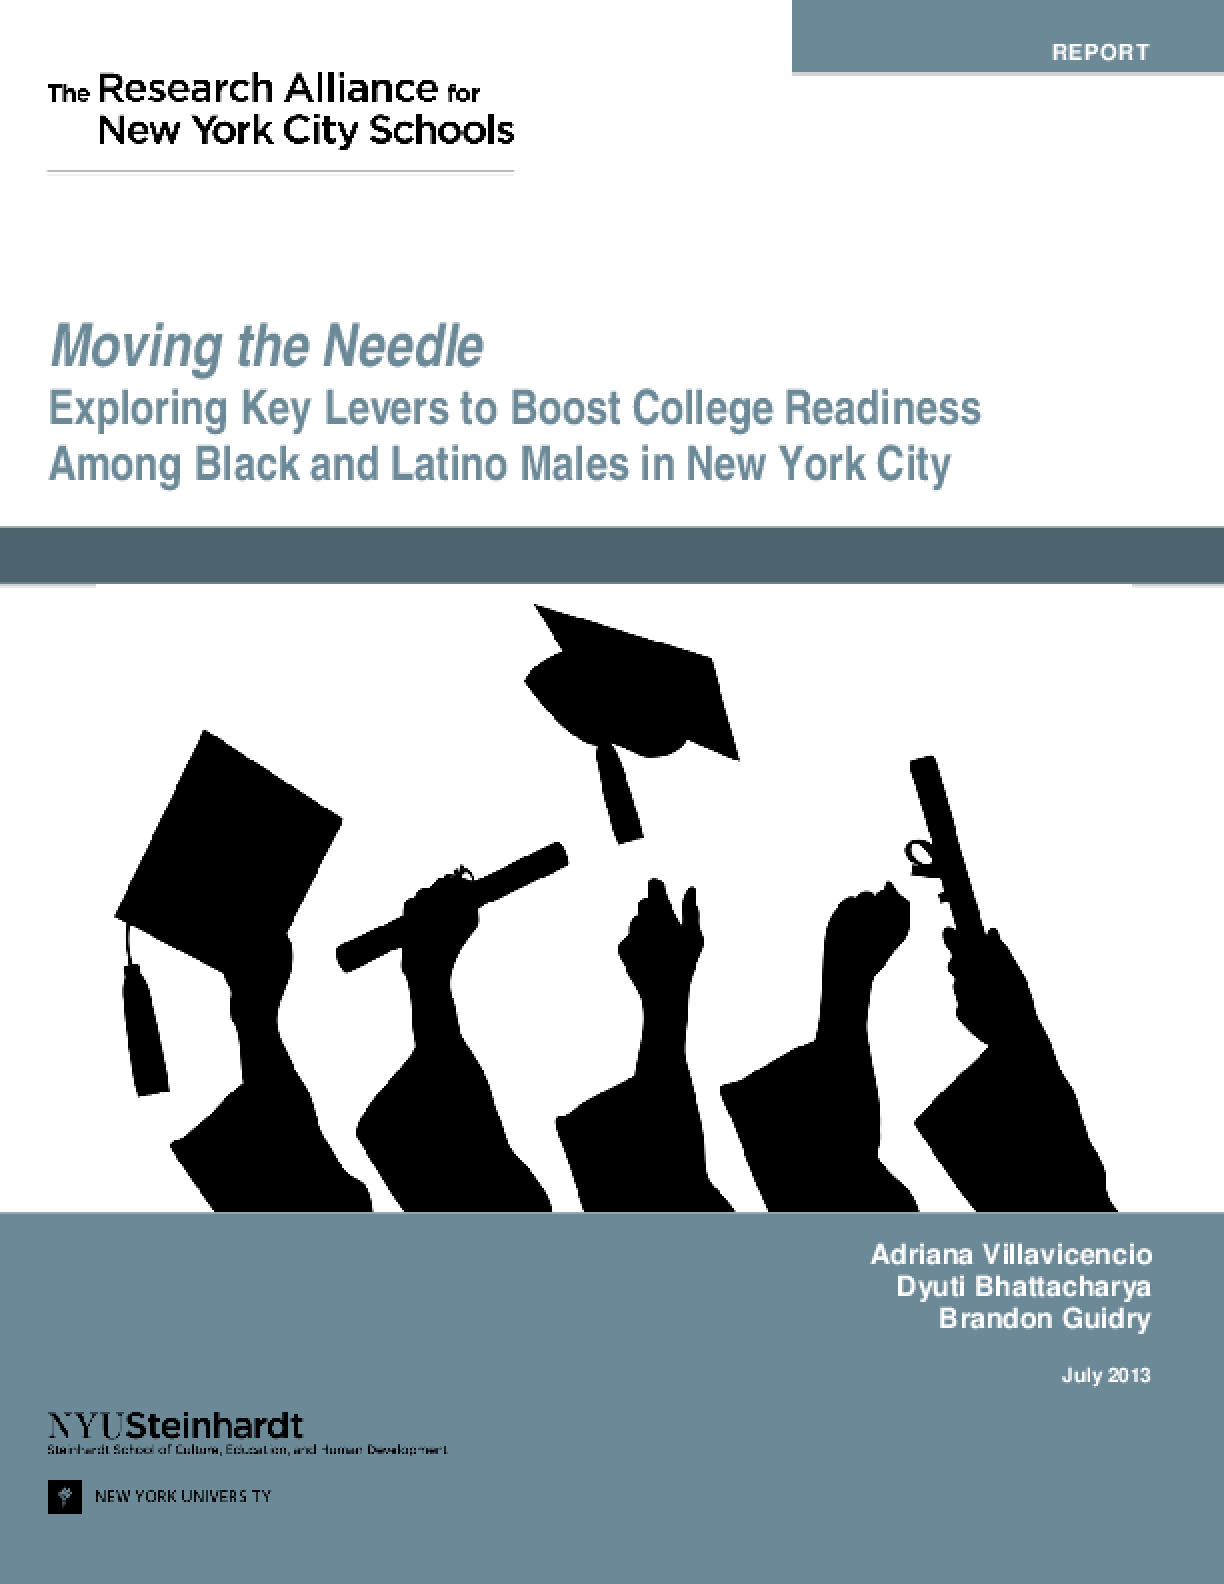 Moving the Needle: Exploring Key Levers to Boost College Readiness Among Black and Latino Males in New York City